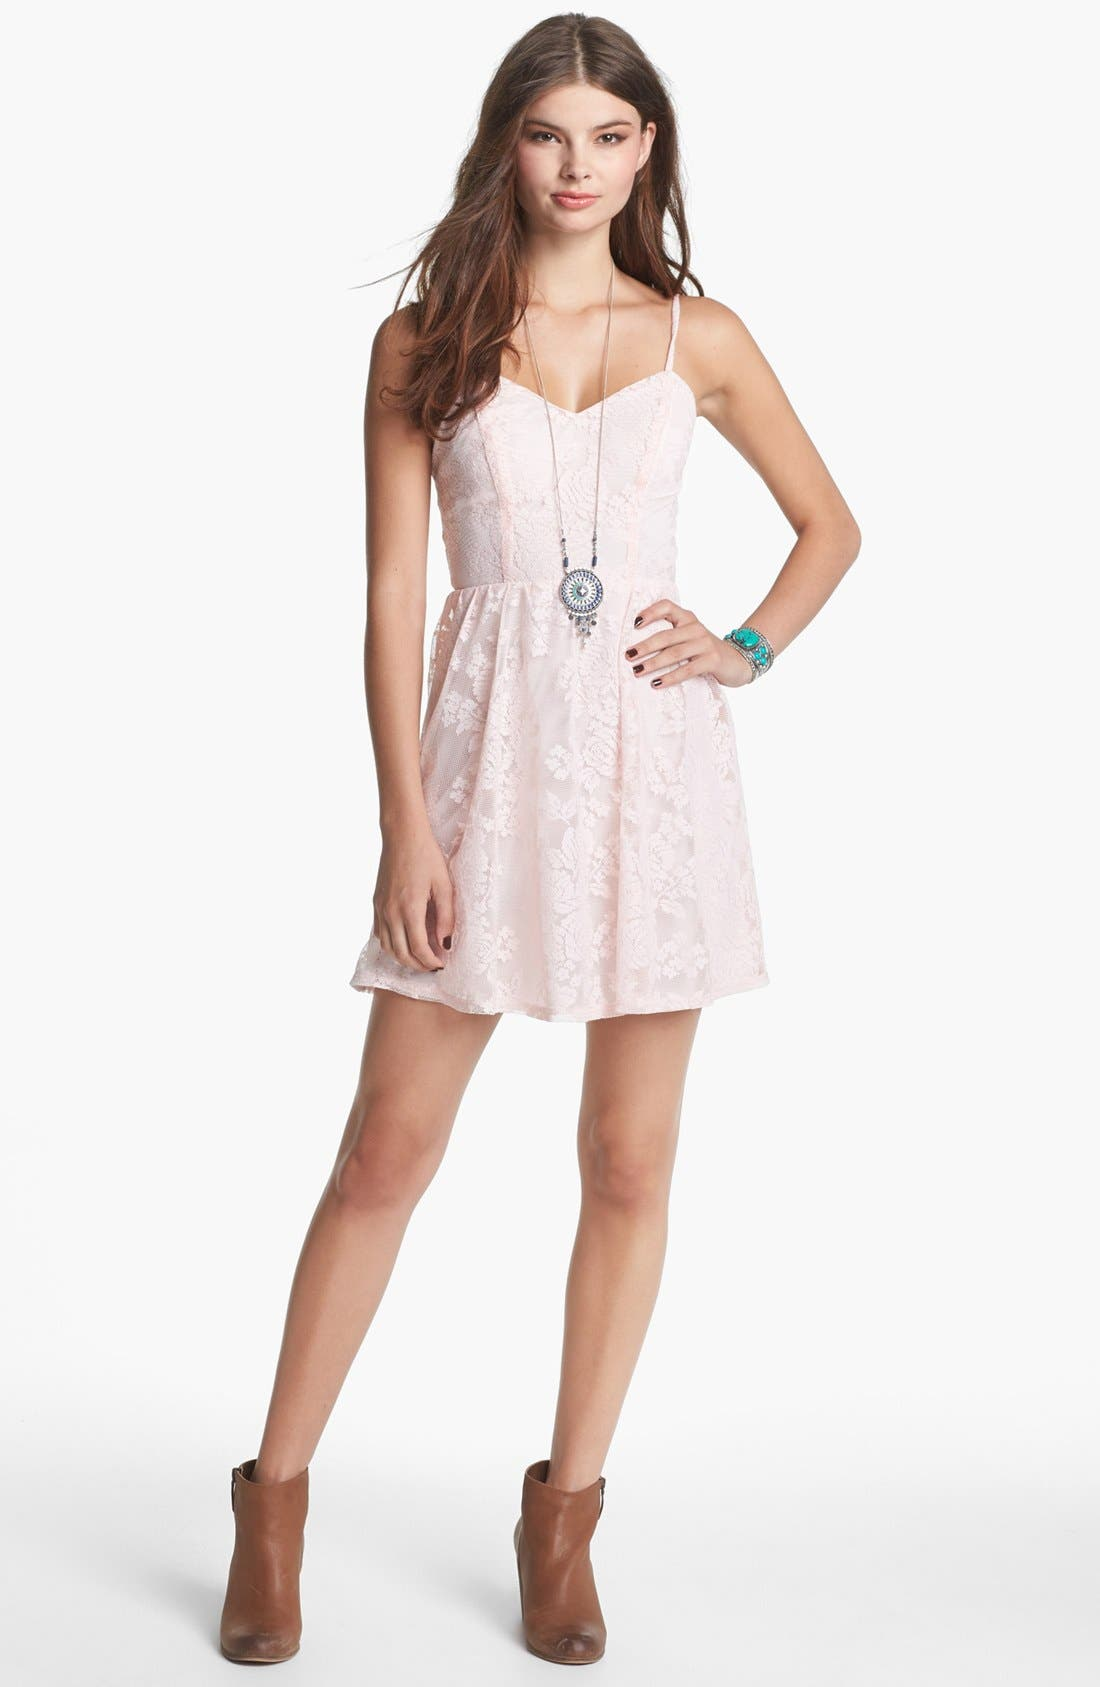 Alternate Image 1 Selected - Socialite Lace Skater Dress (Juniors) (Online Only)